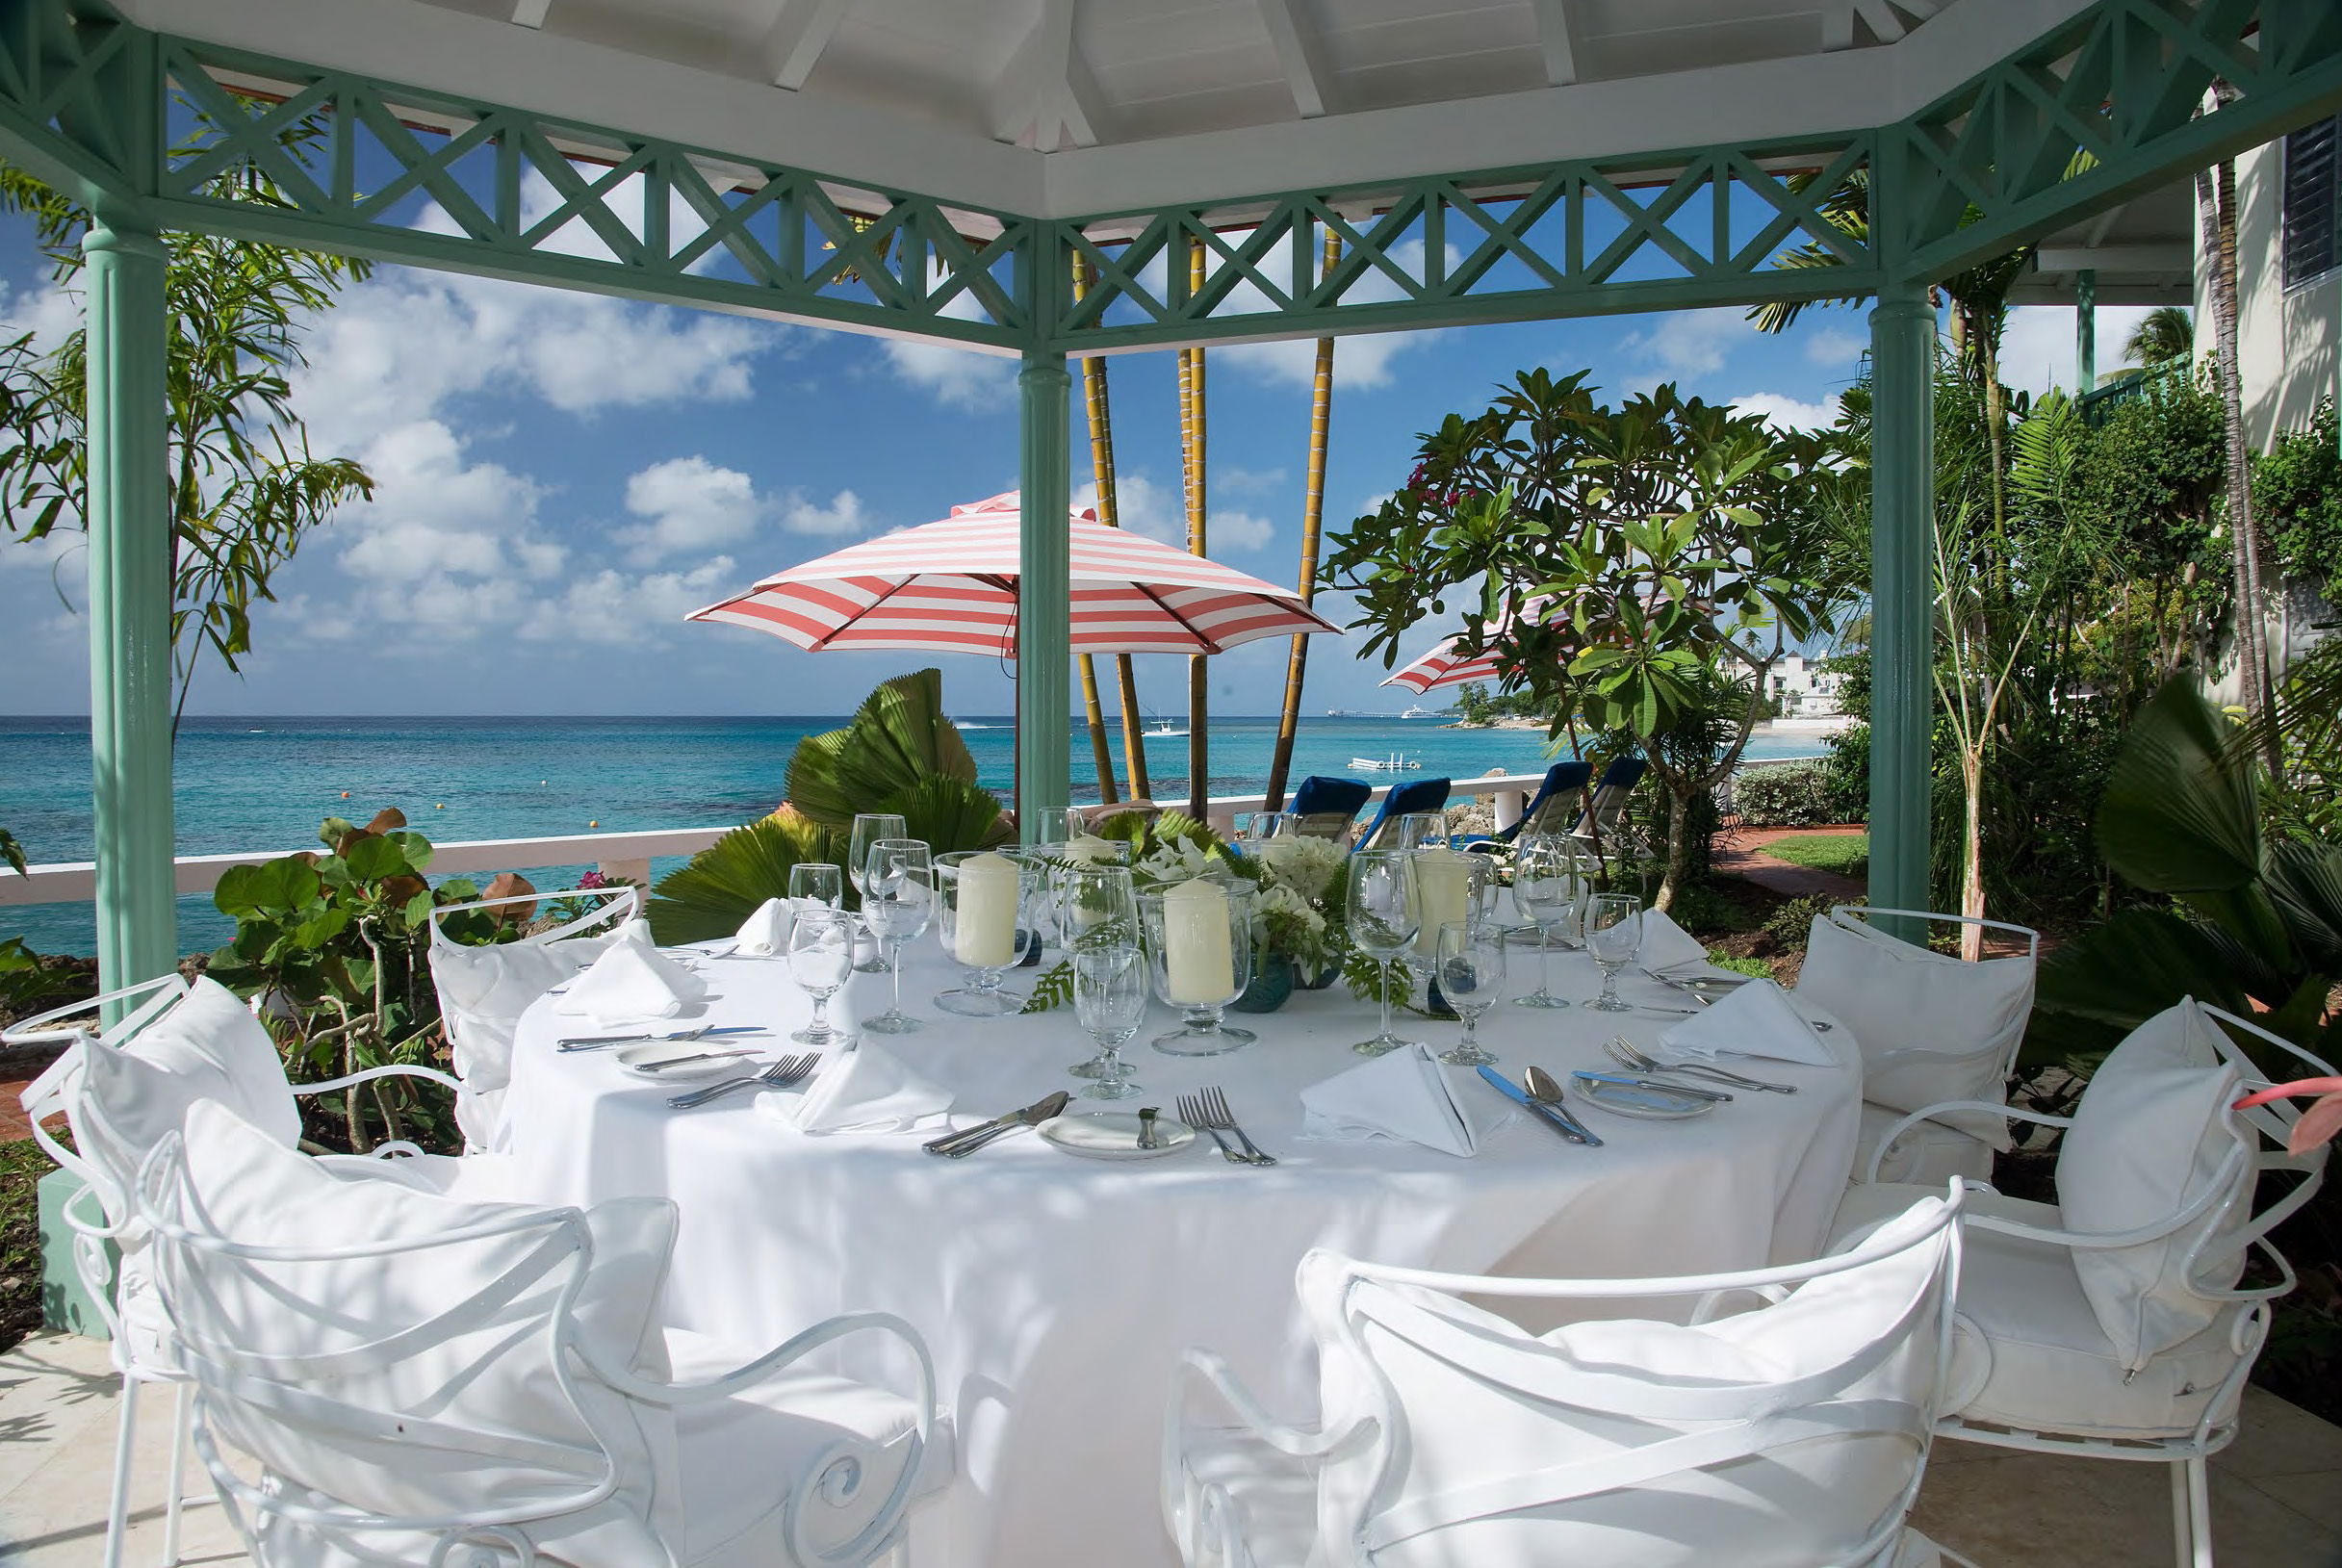 Cobblers Cove Private Dining LazyBones.jpg